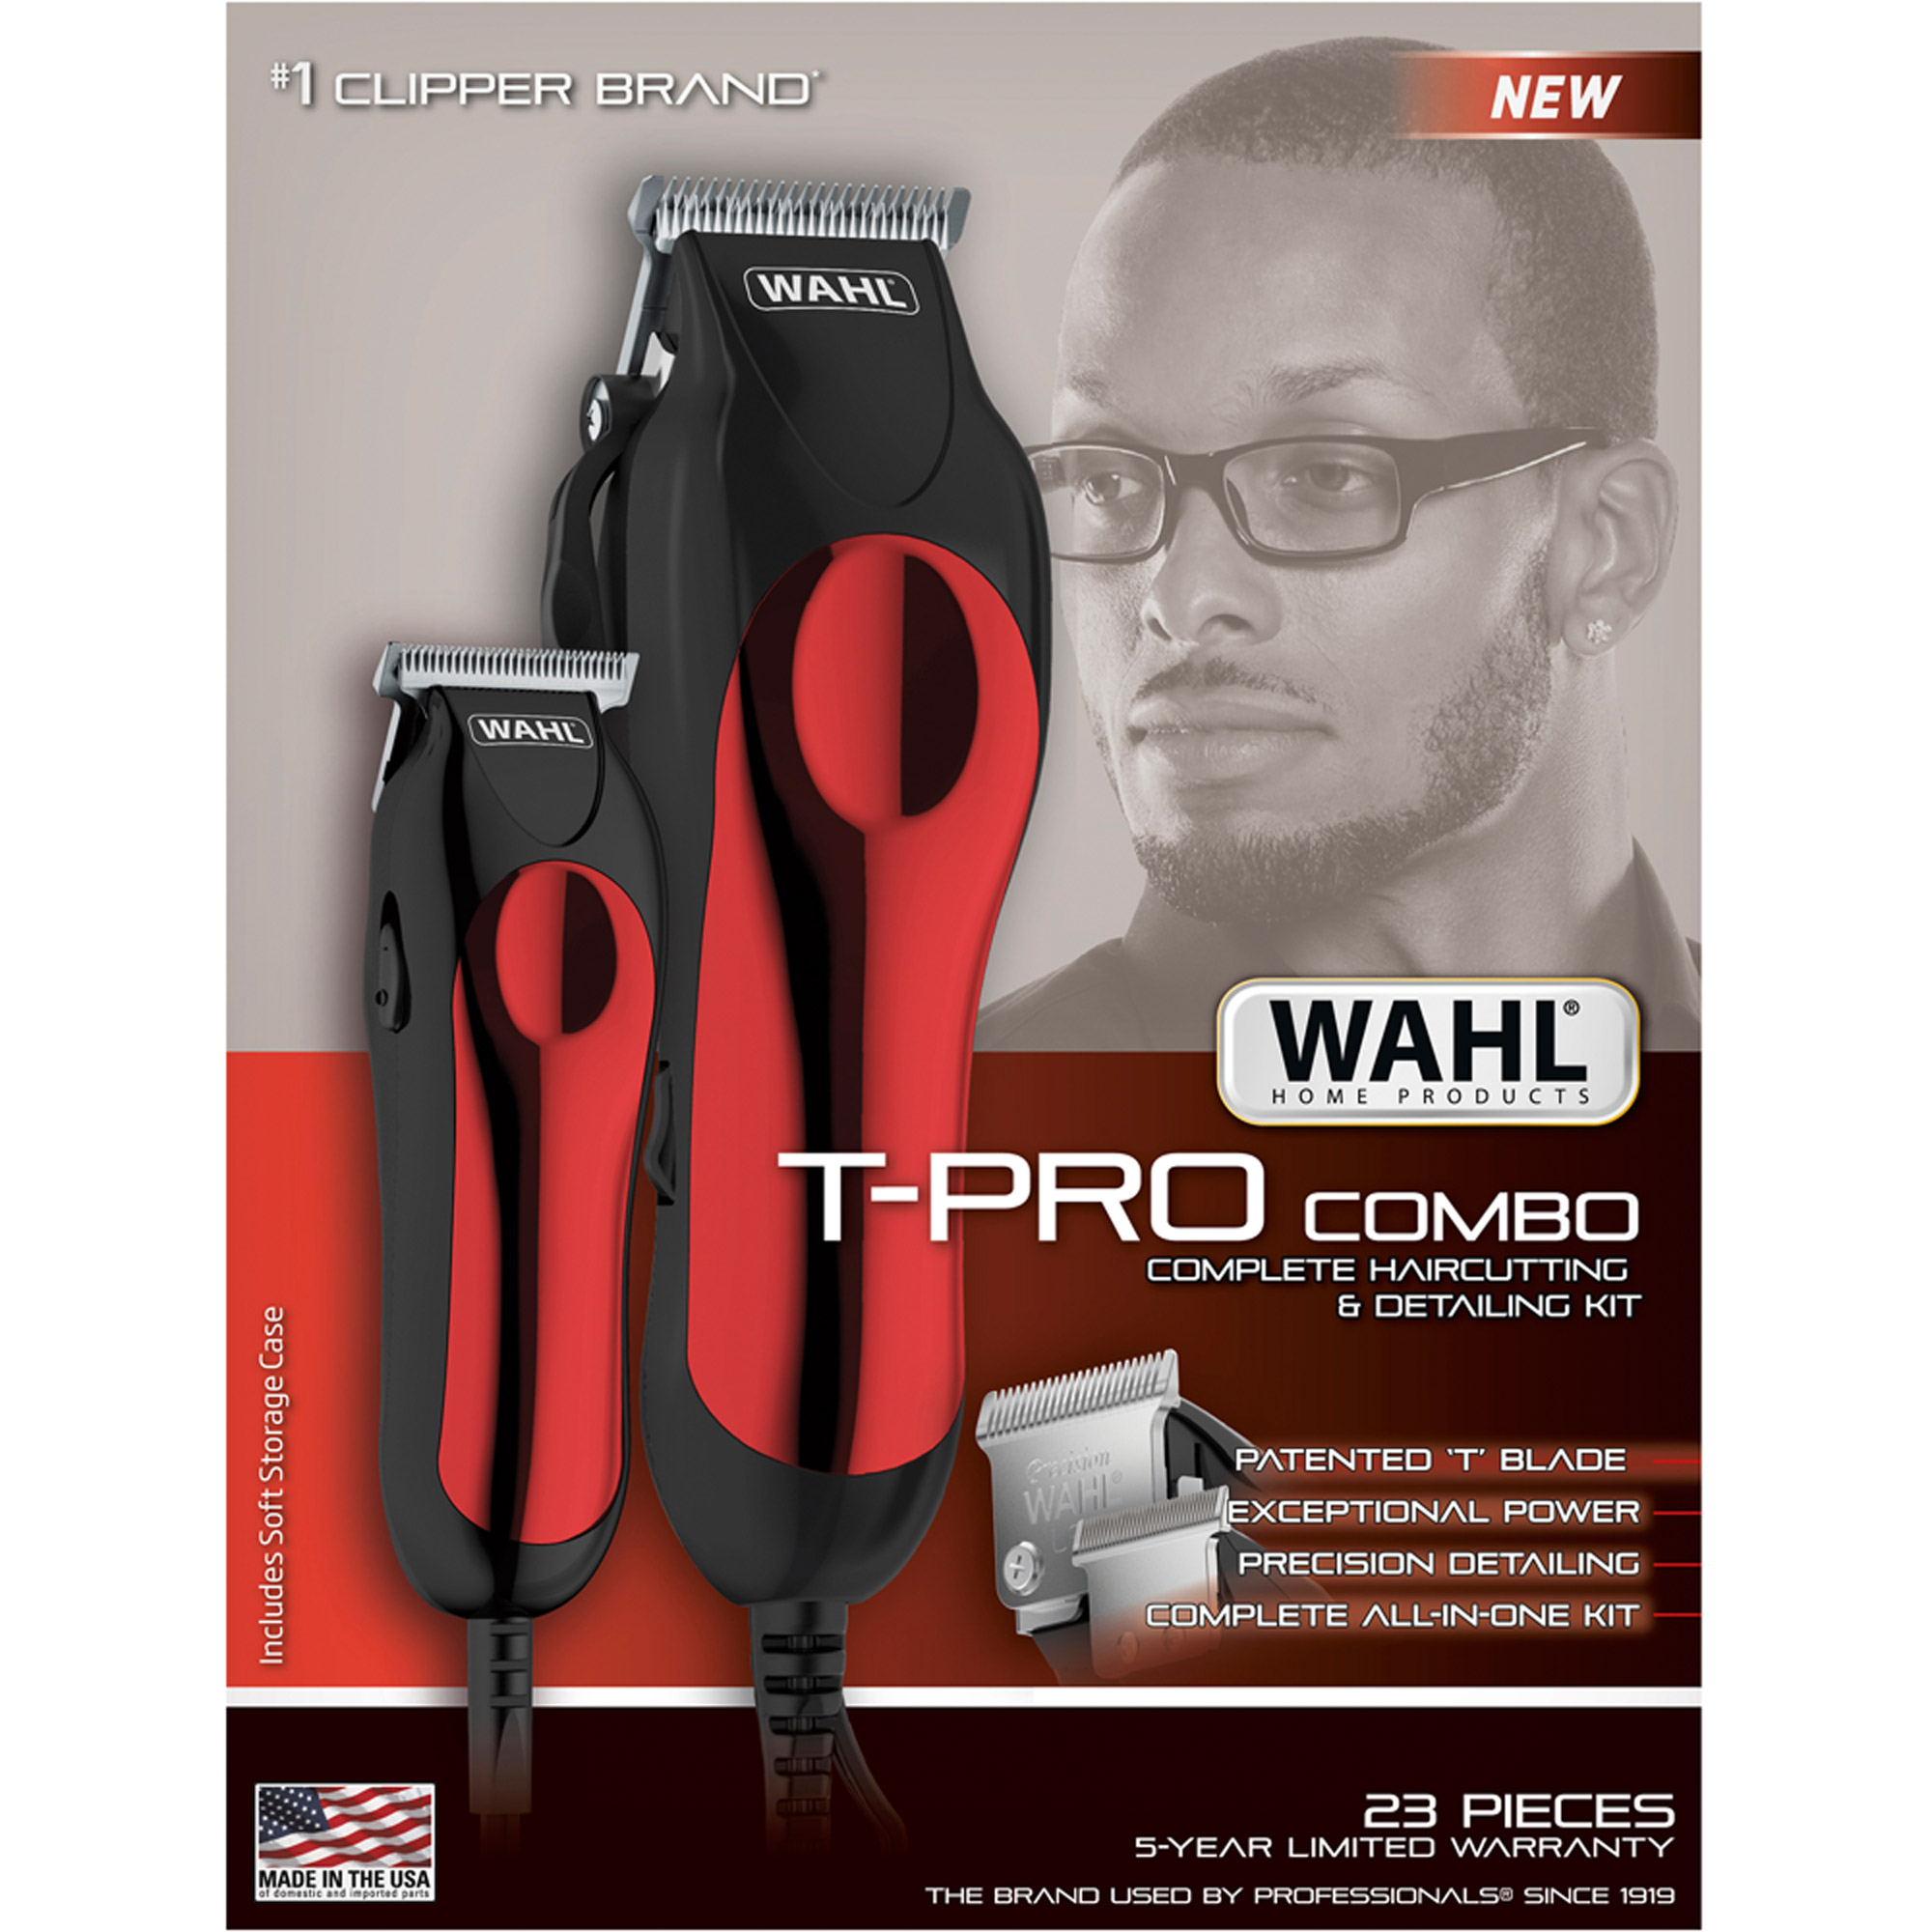 Wahl T-Pro Combo Complete Haircutting & Detailing Kit, Model 79111-1501, 23 pc